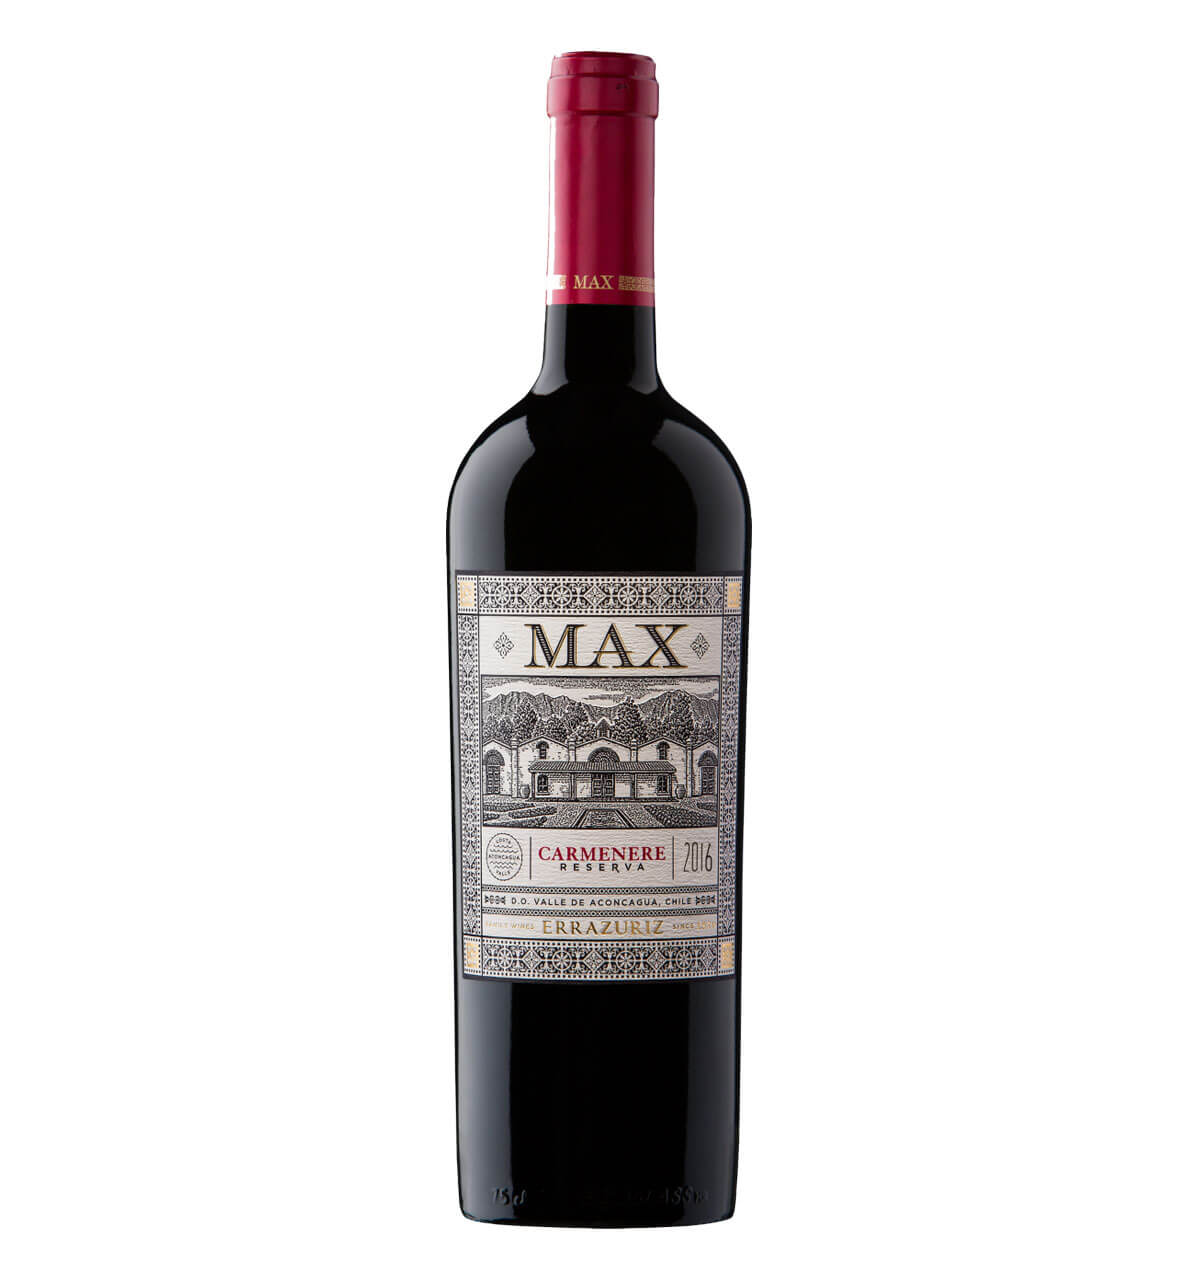 Max Carmenere 2016, bottle on white